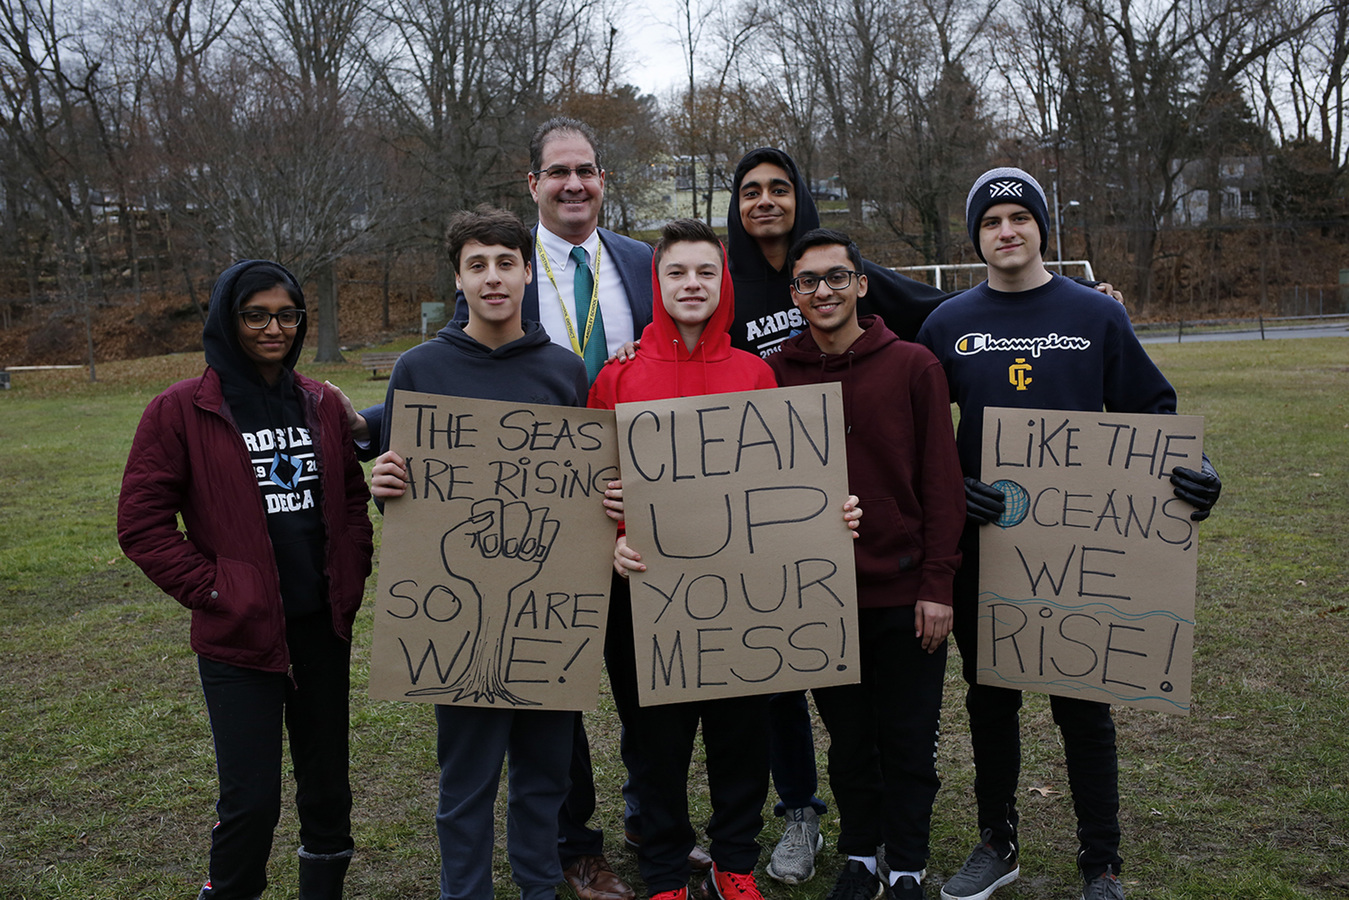 Rivertowns Climate Rally Ardsley Middle School 12/6/19 Dr Ryan Schoenfeld, Superintendent of Ardsley Union Free School District, standing with his students